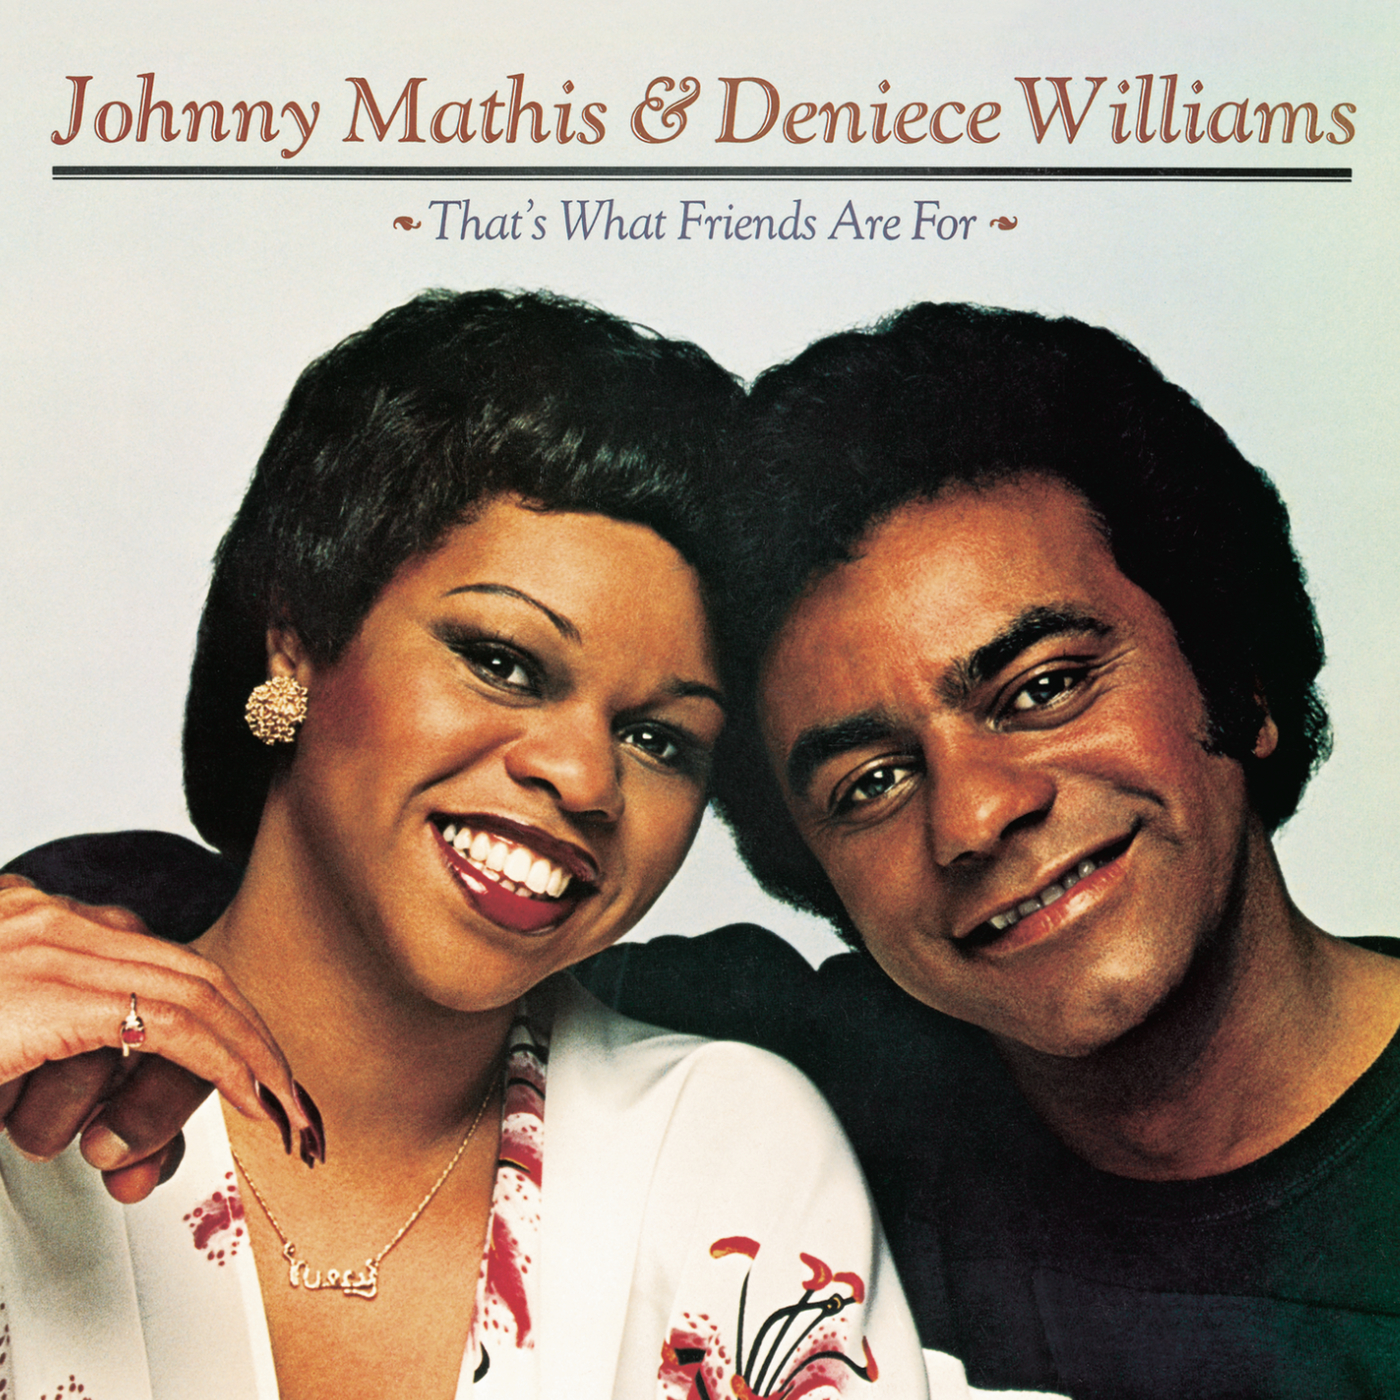 That's What Friends Are For - Johnny Mathis